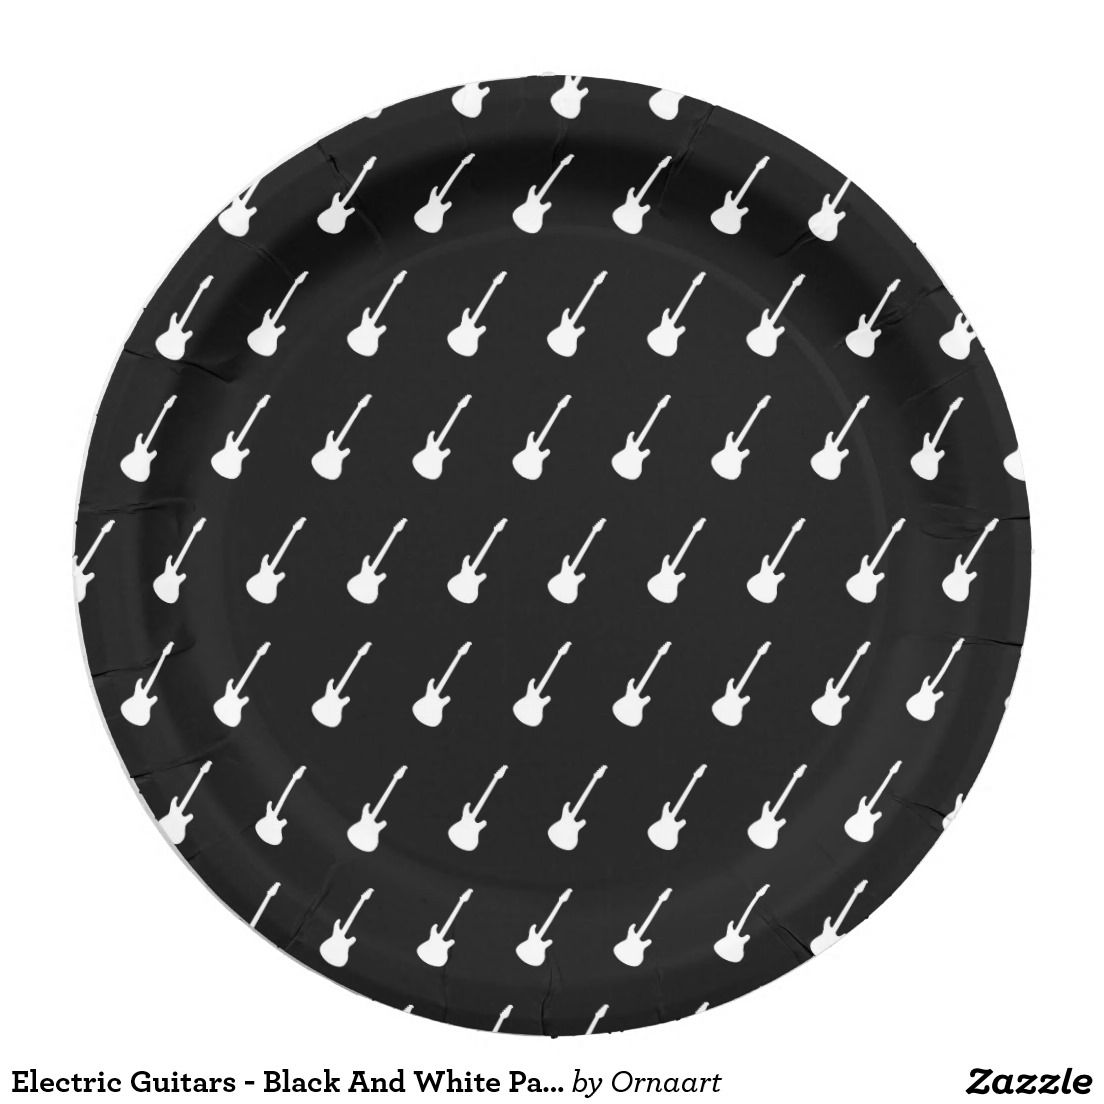 Electric Guitars - Black And White Paper Plates 9 Inch Paper Plate  sc 1 st  Pinterest & Electric Guitars - Black And White Paper Plates 9 Inch Paper Plate ...